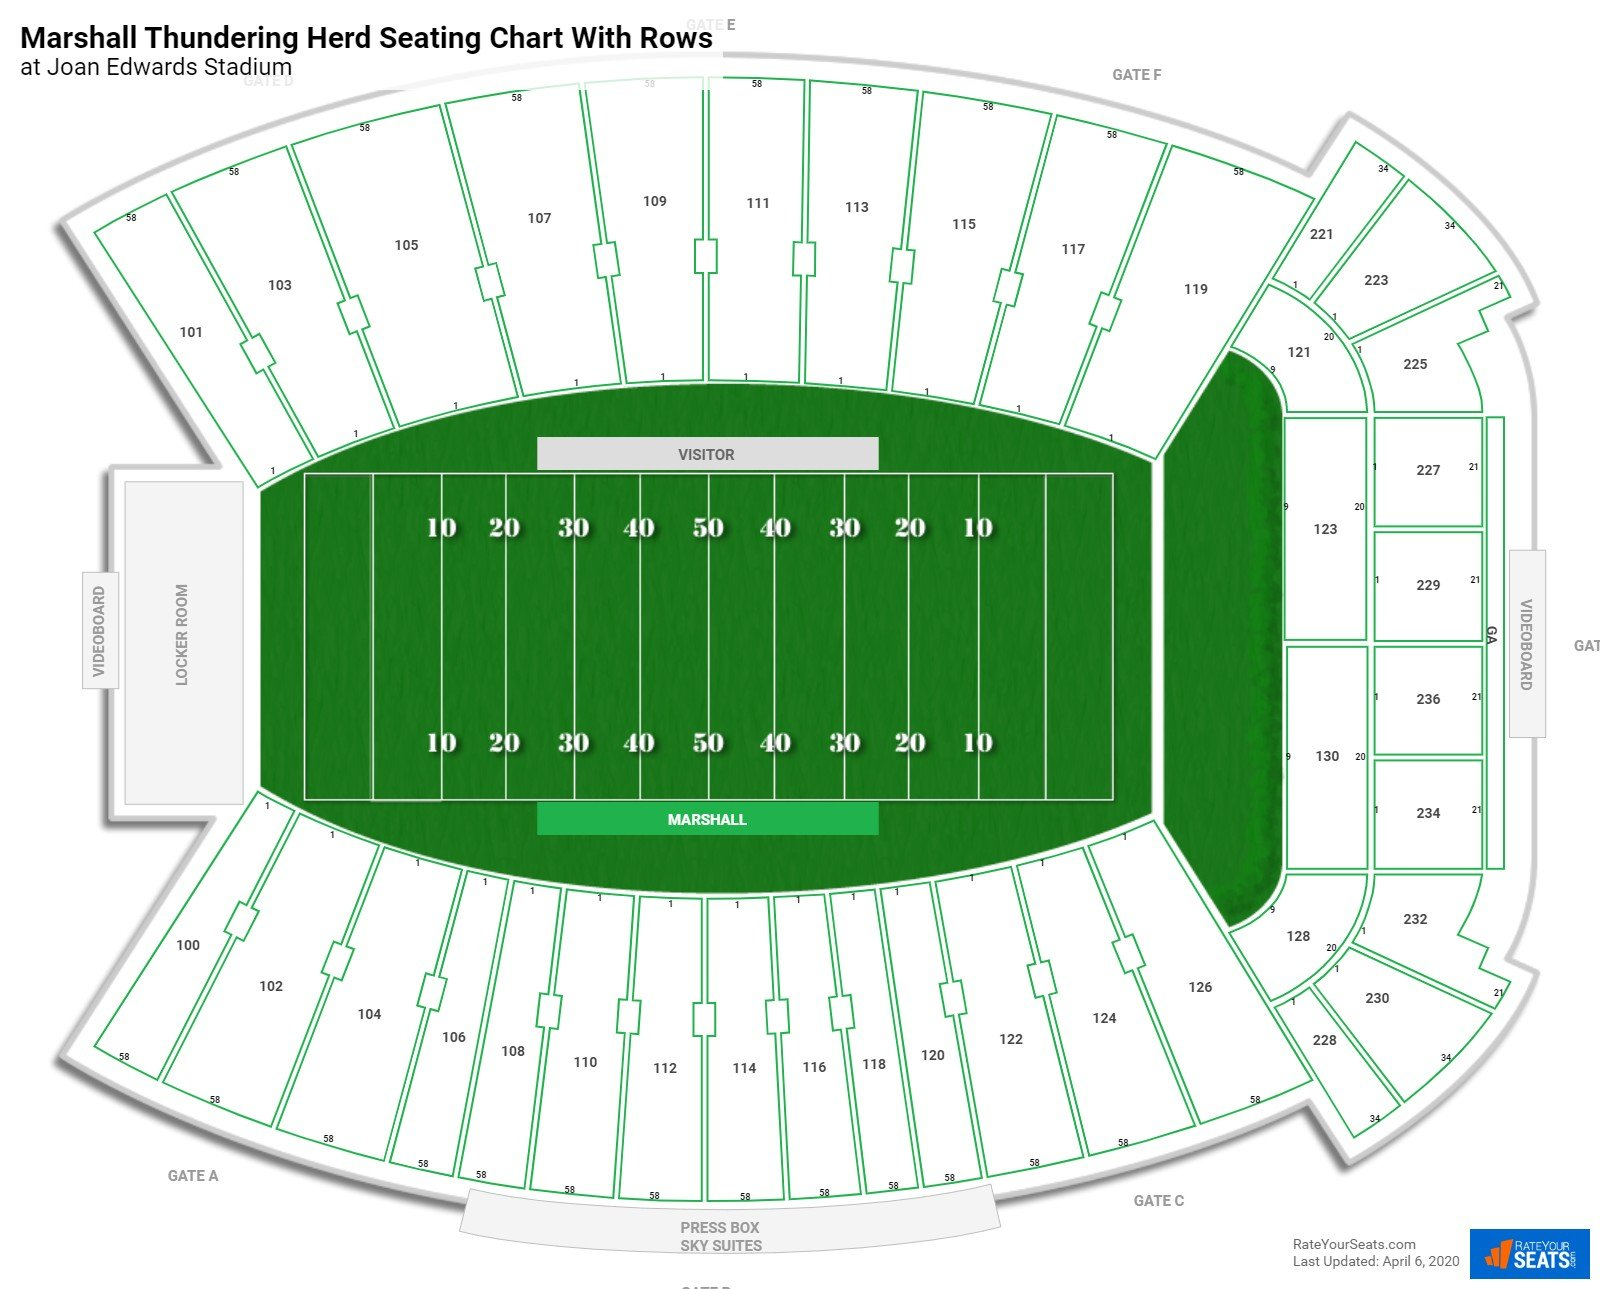 Joan Edwards Stadium seating chart with rows